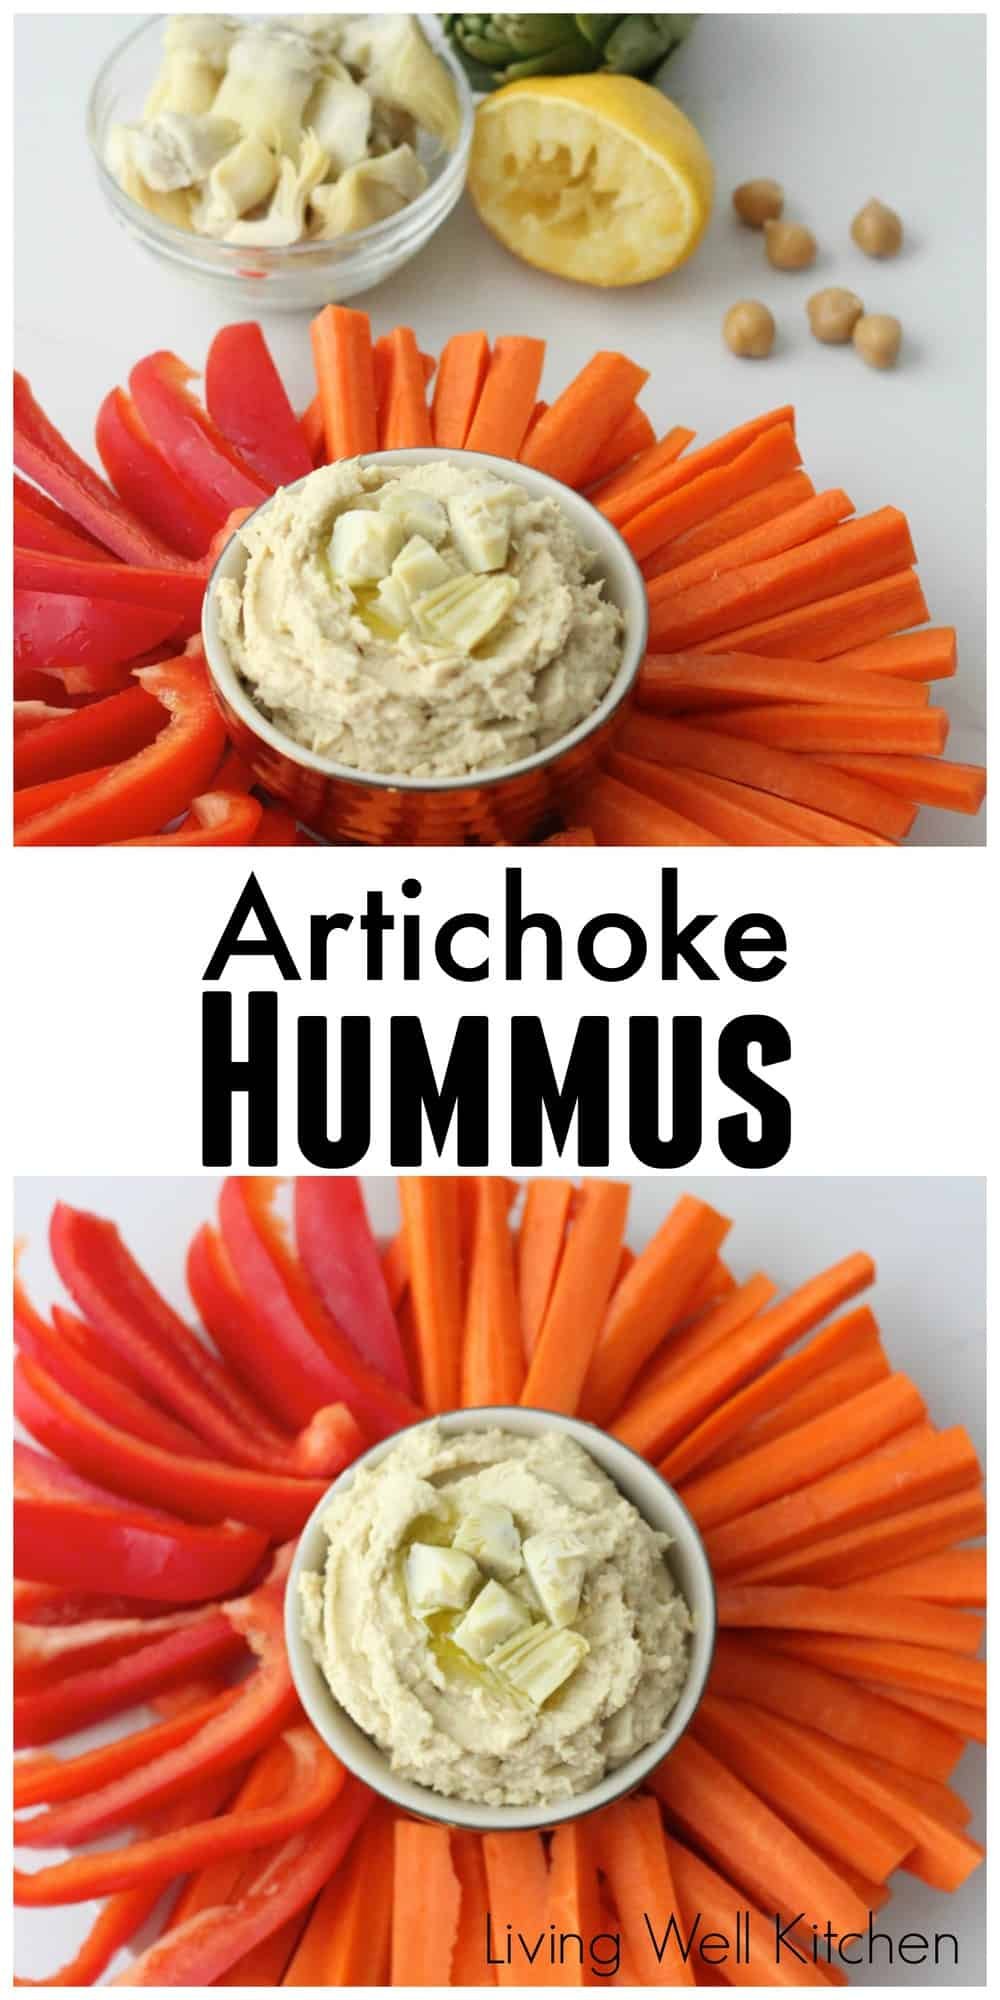 Easy homemade Artichoke Hummus made with canned artichoke hearts and chickpeas. Easy, budget friendly, and delicious! from Living Well Kitchen @memeinge